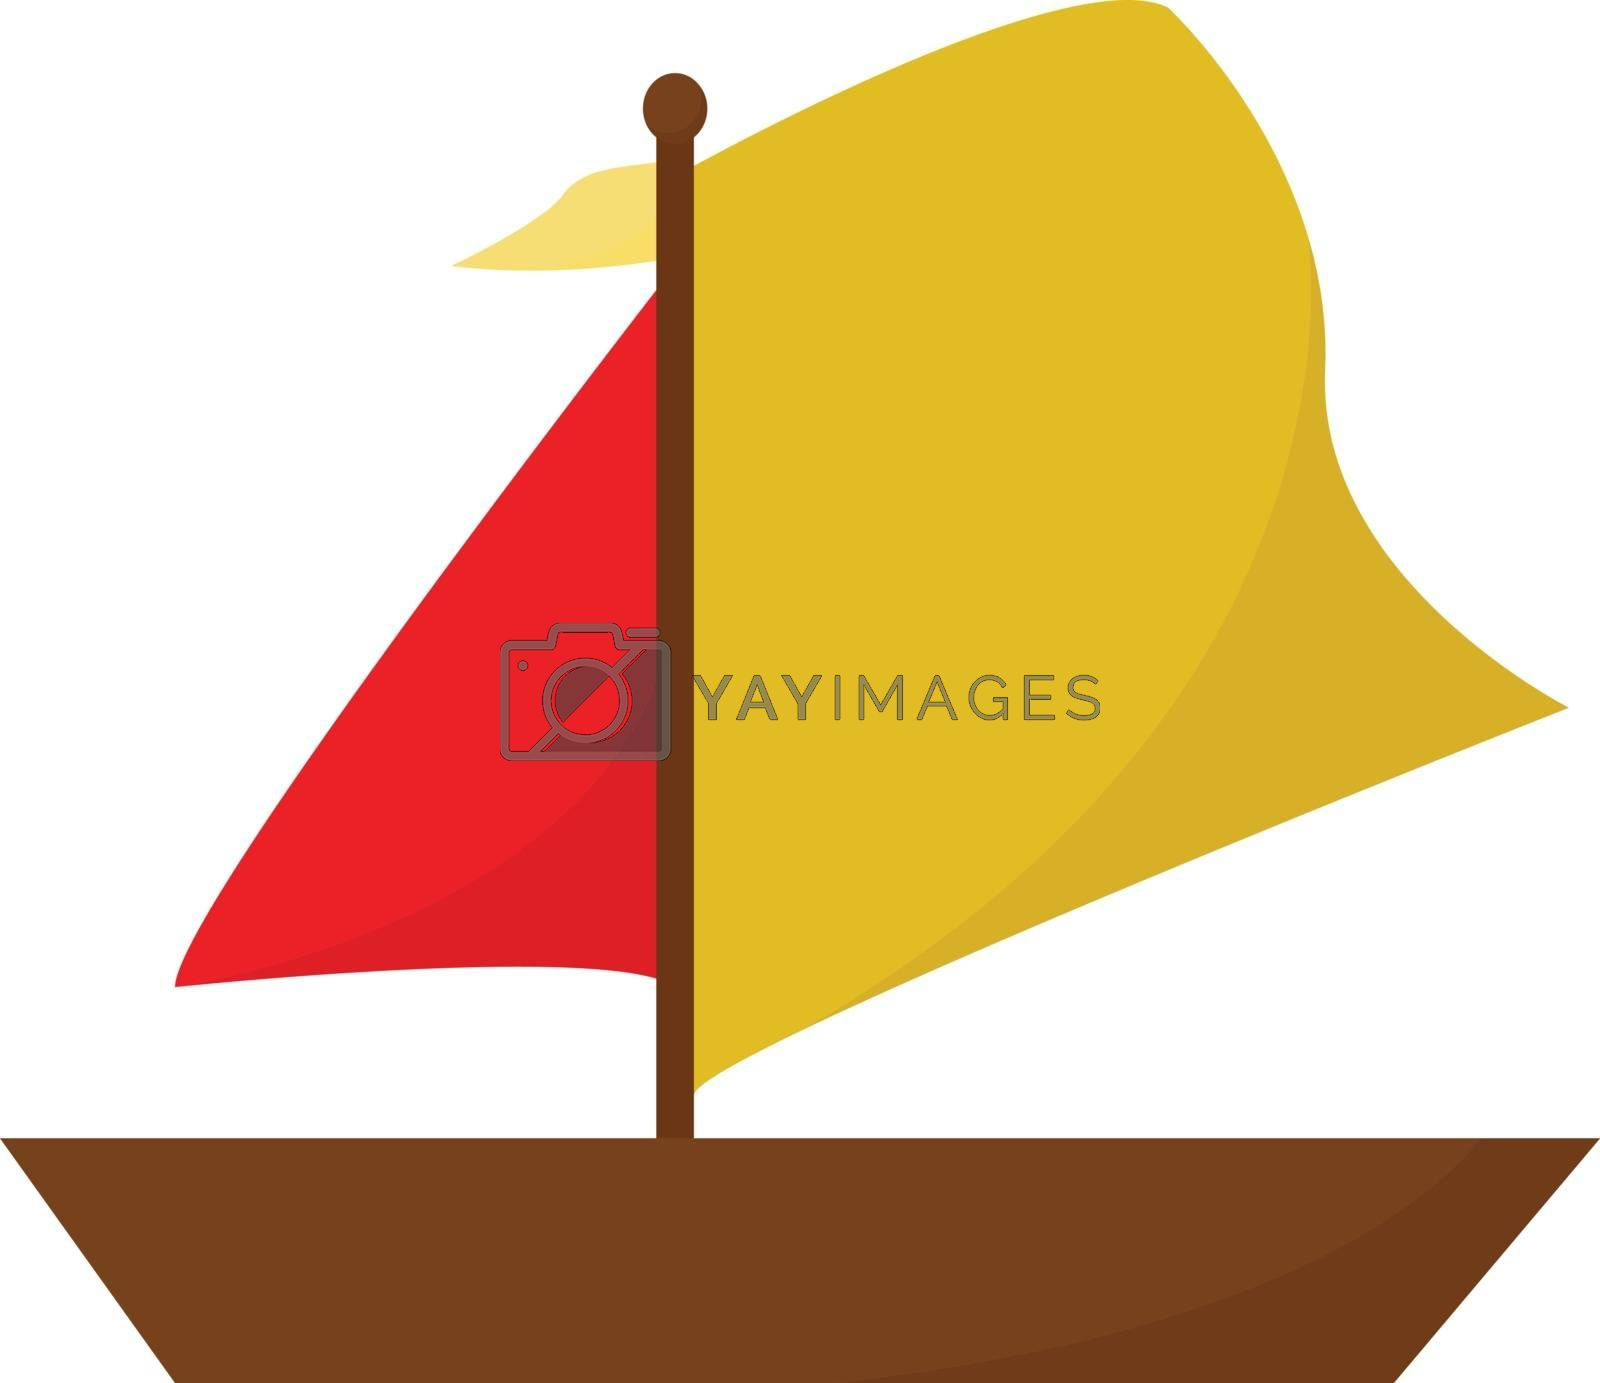 Royalty free image of Clipart of a boat in red and yellow color vector or color illust by Morphart